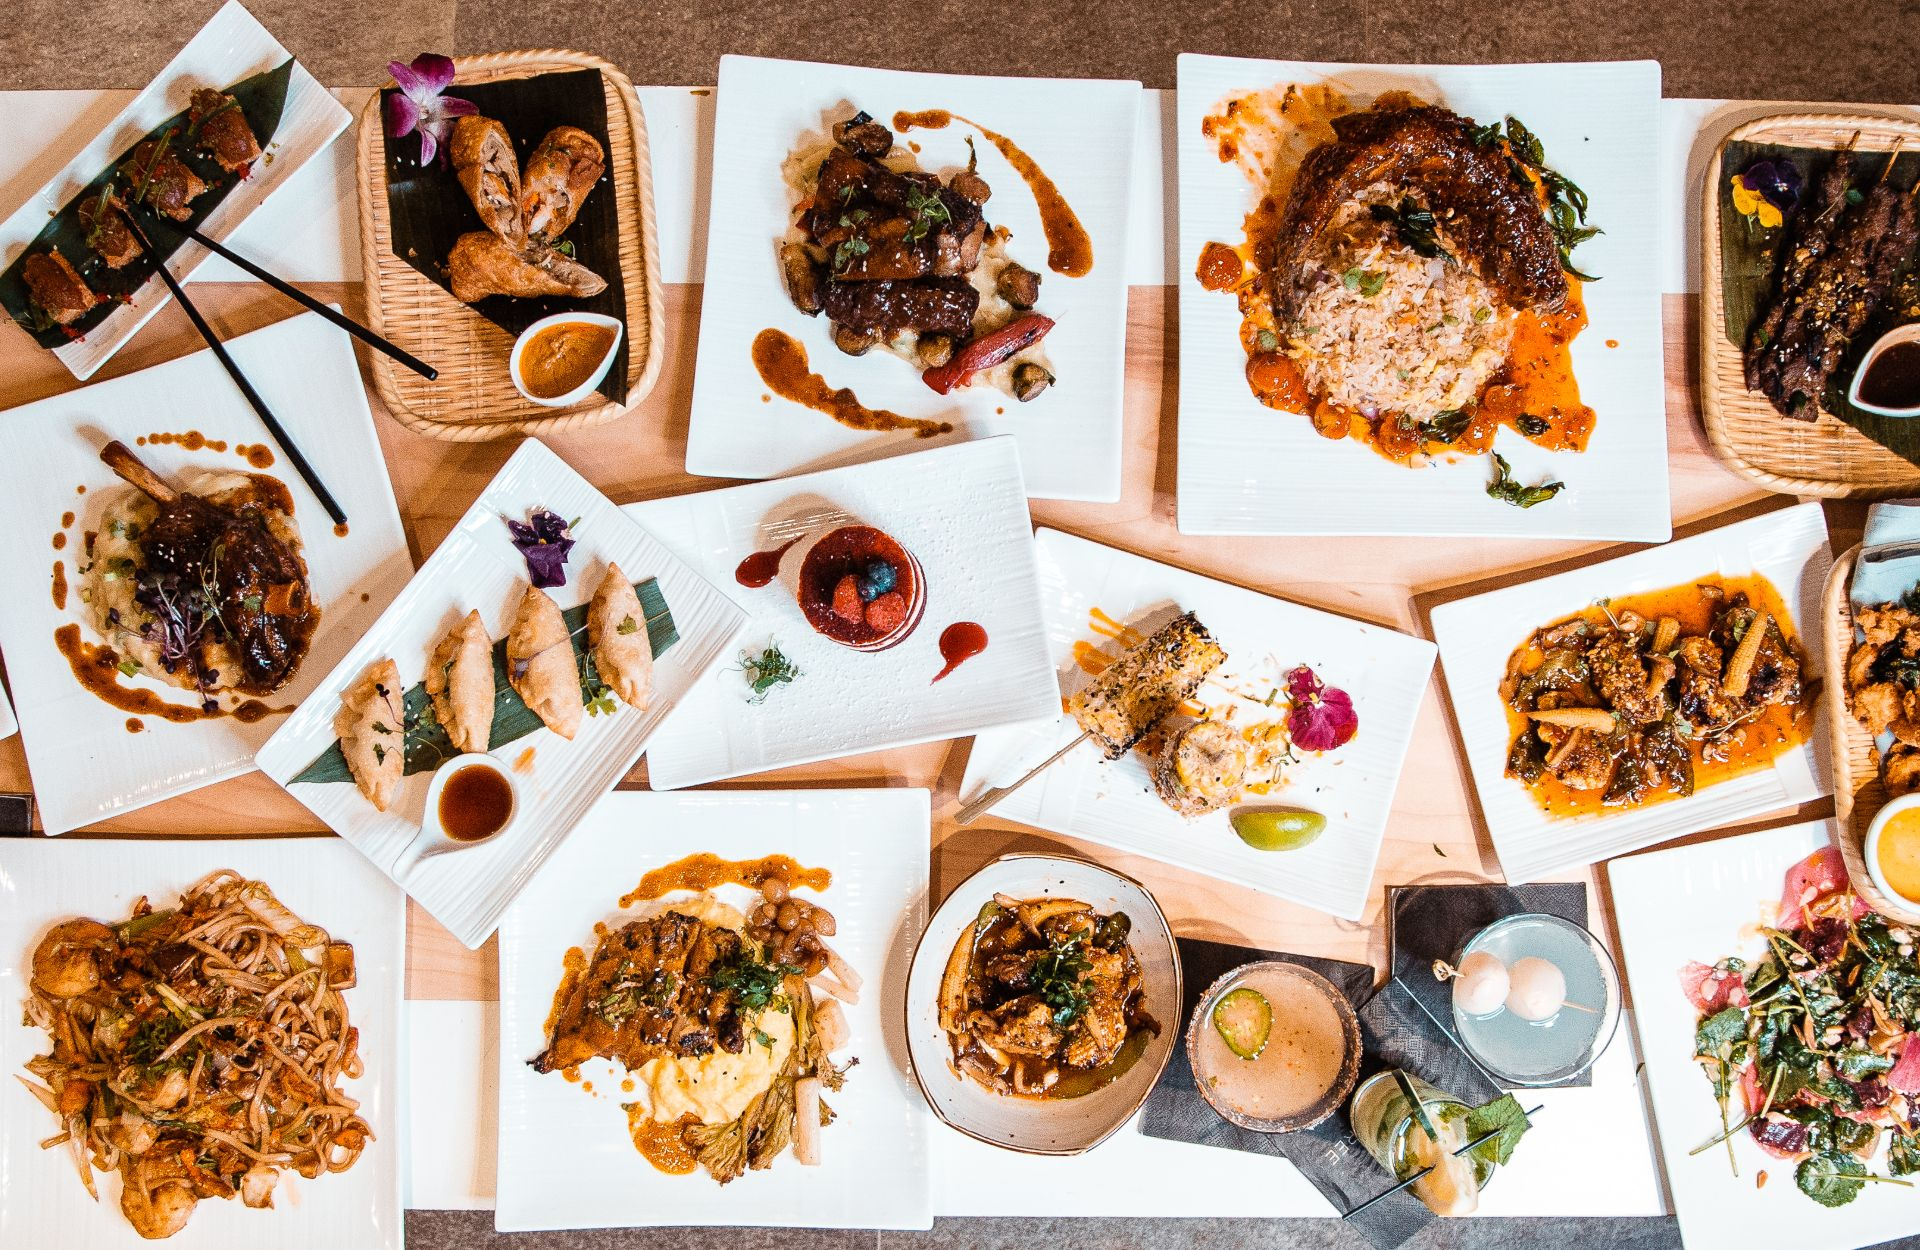 An assortment of Asian inspired entrees, appetizers and desserts on plates